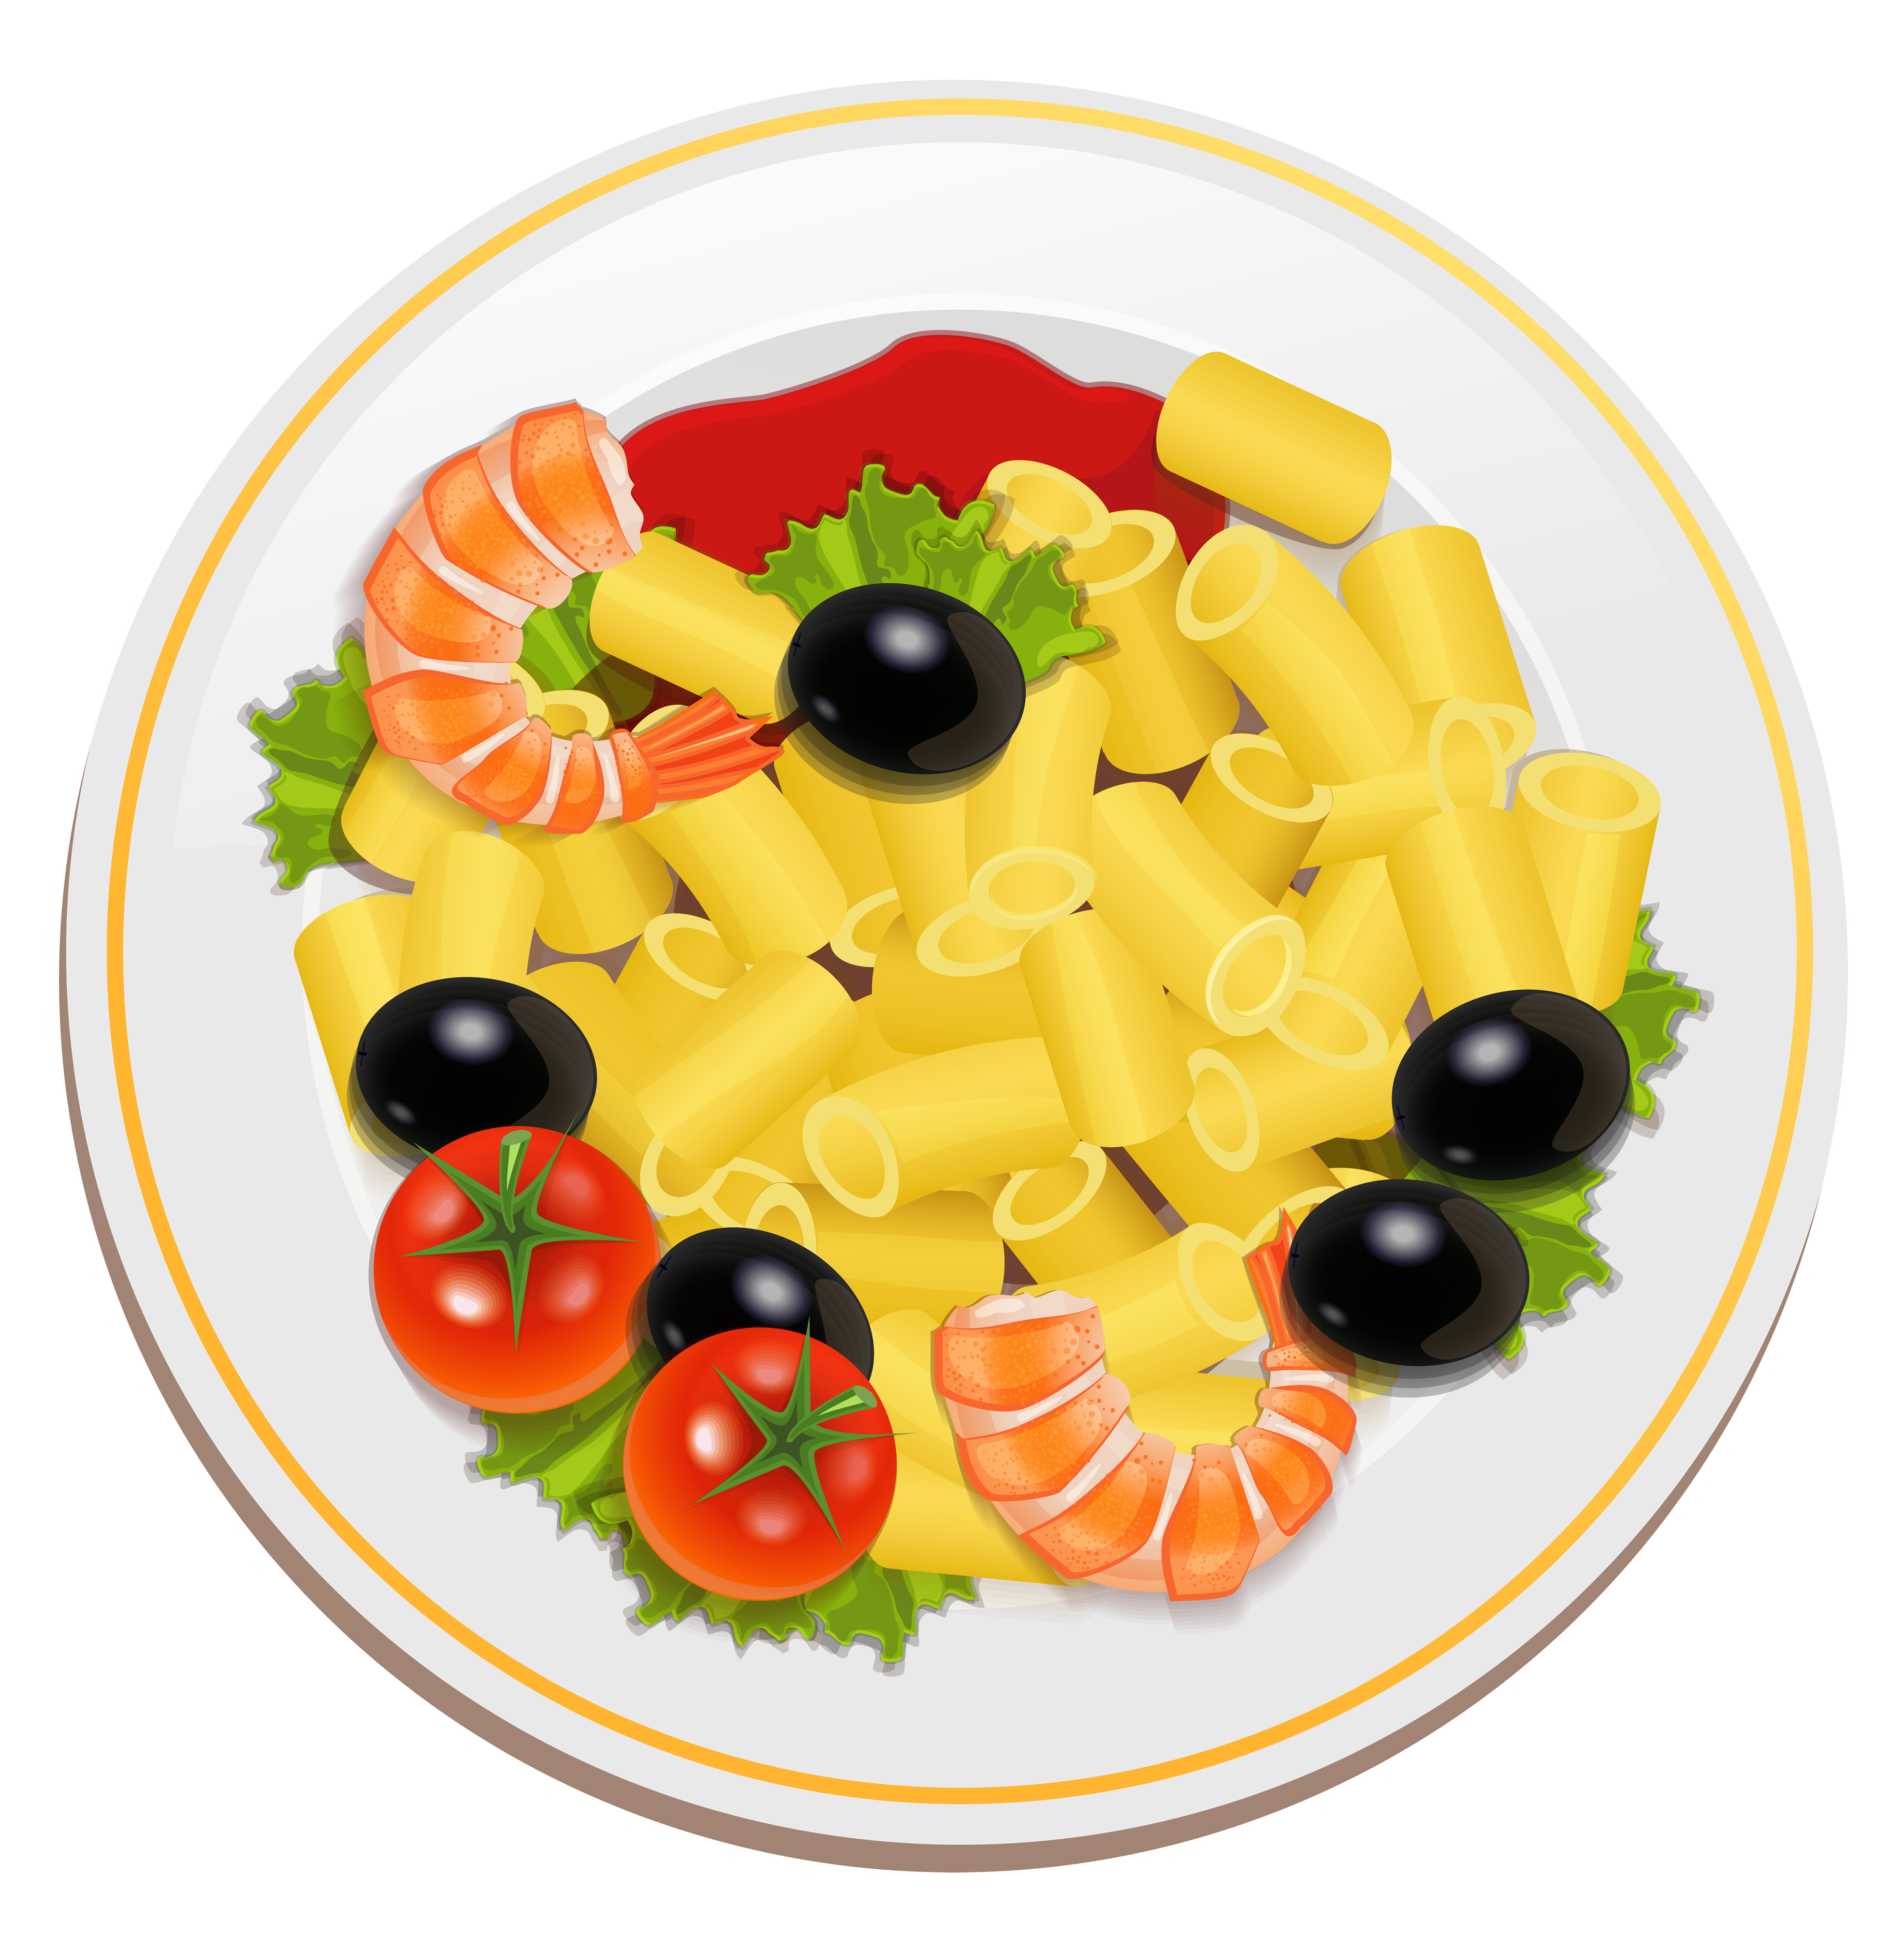 Pasta clipart png graphic stock Pasta with Shrimps PNG Clipart - Best WEB Clipart graphic stock